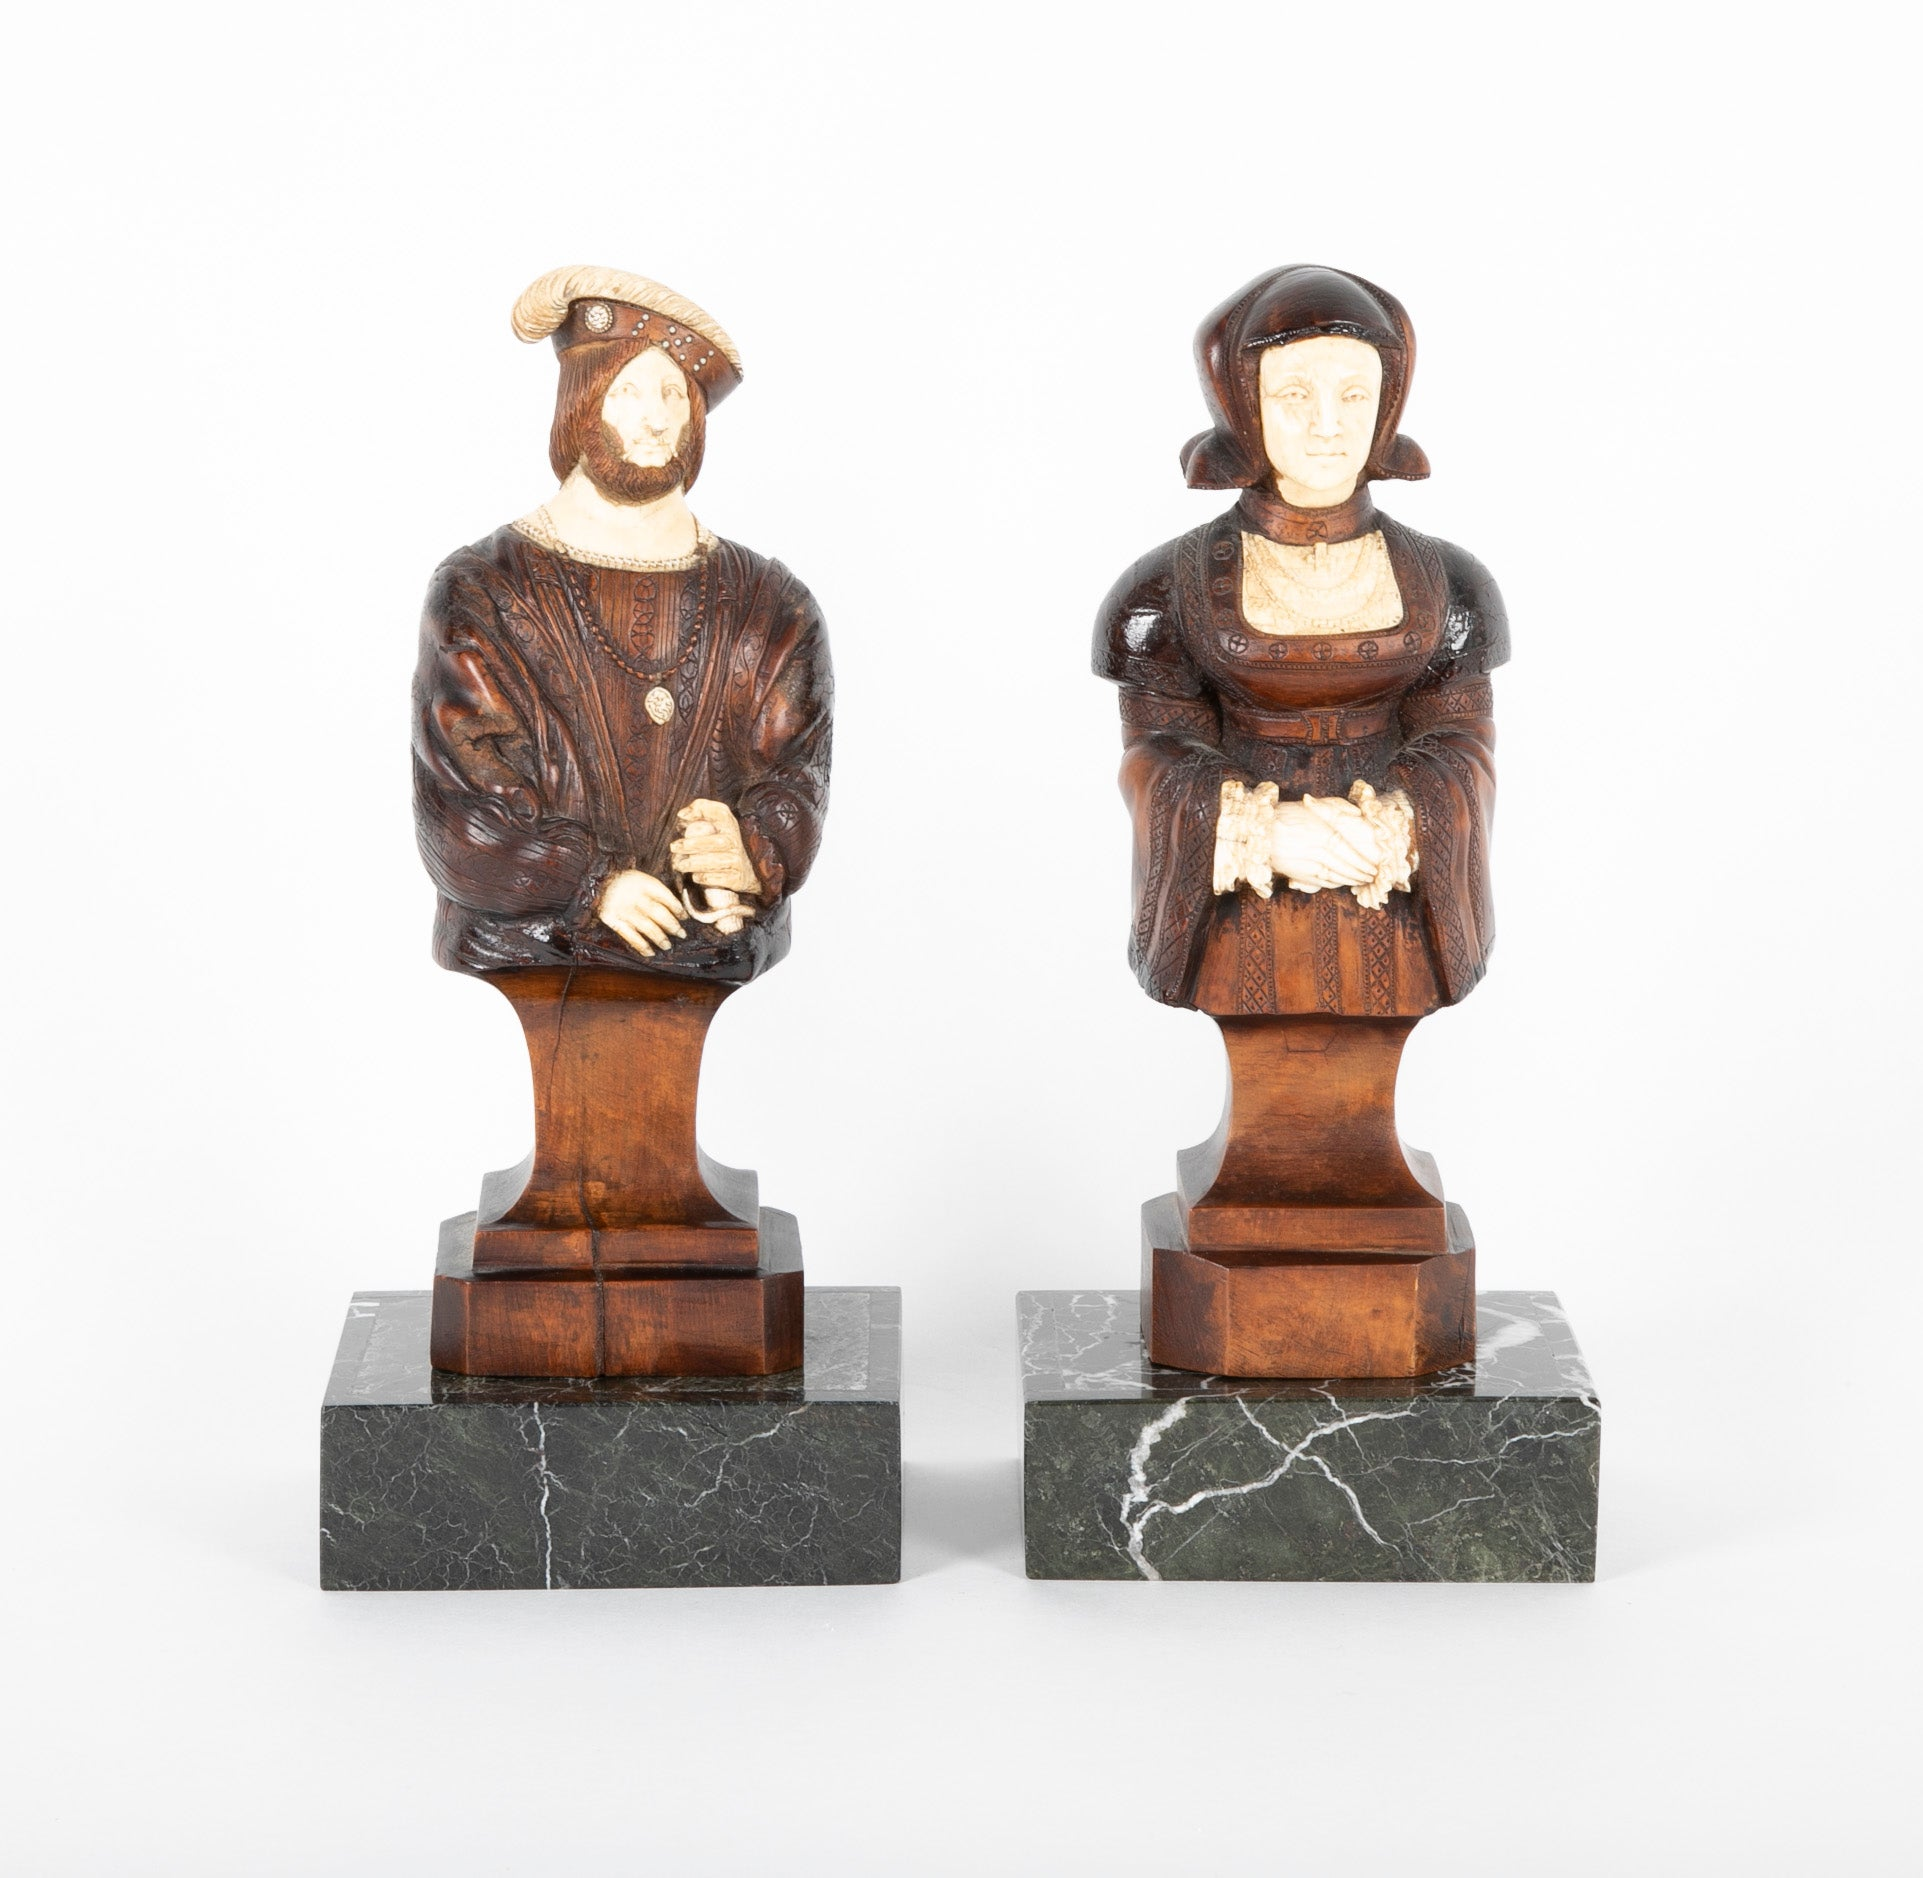 Pair of 19th Century Carved Wood Figures